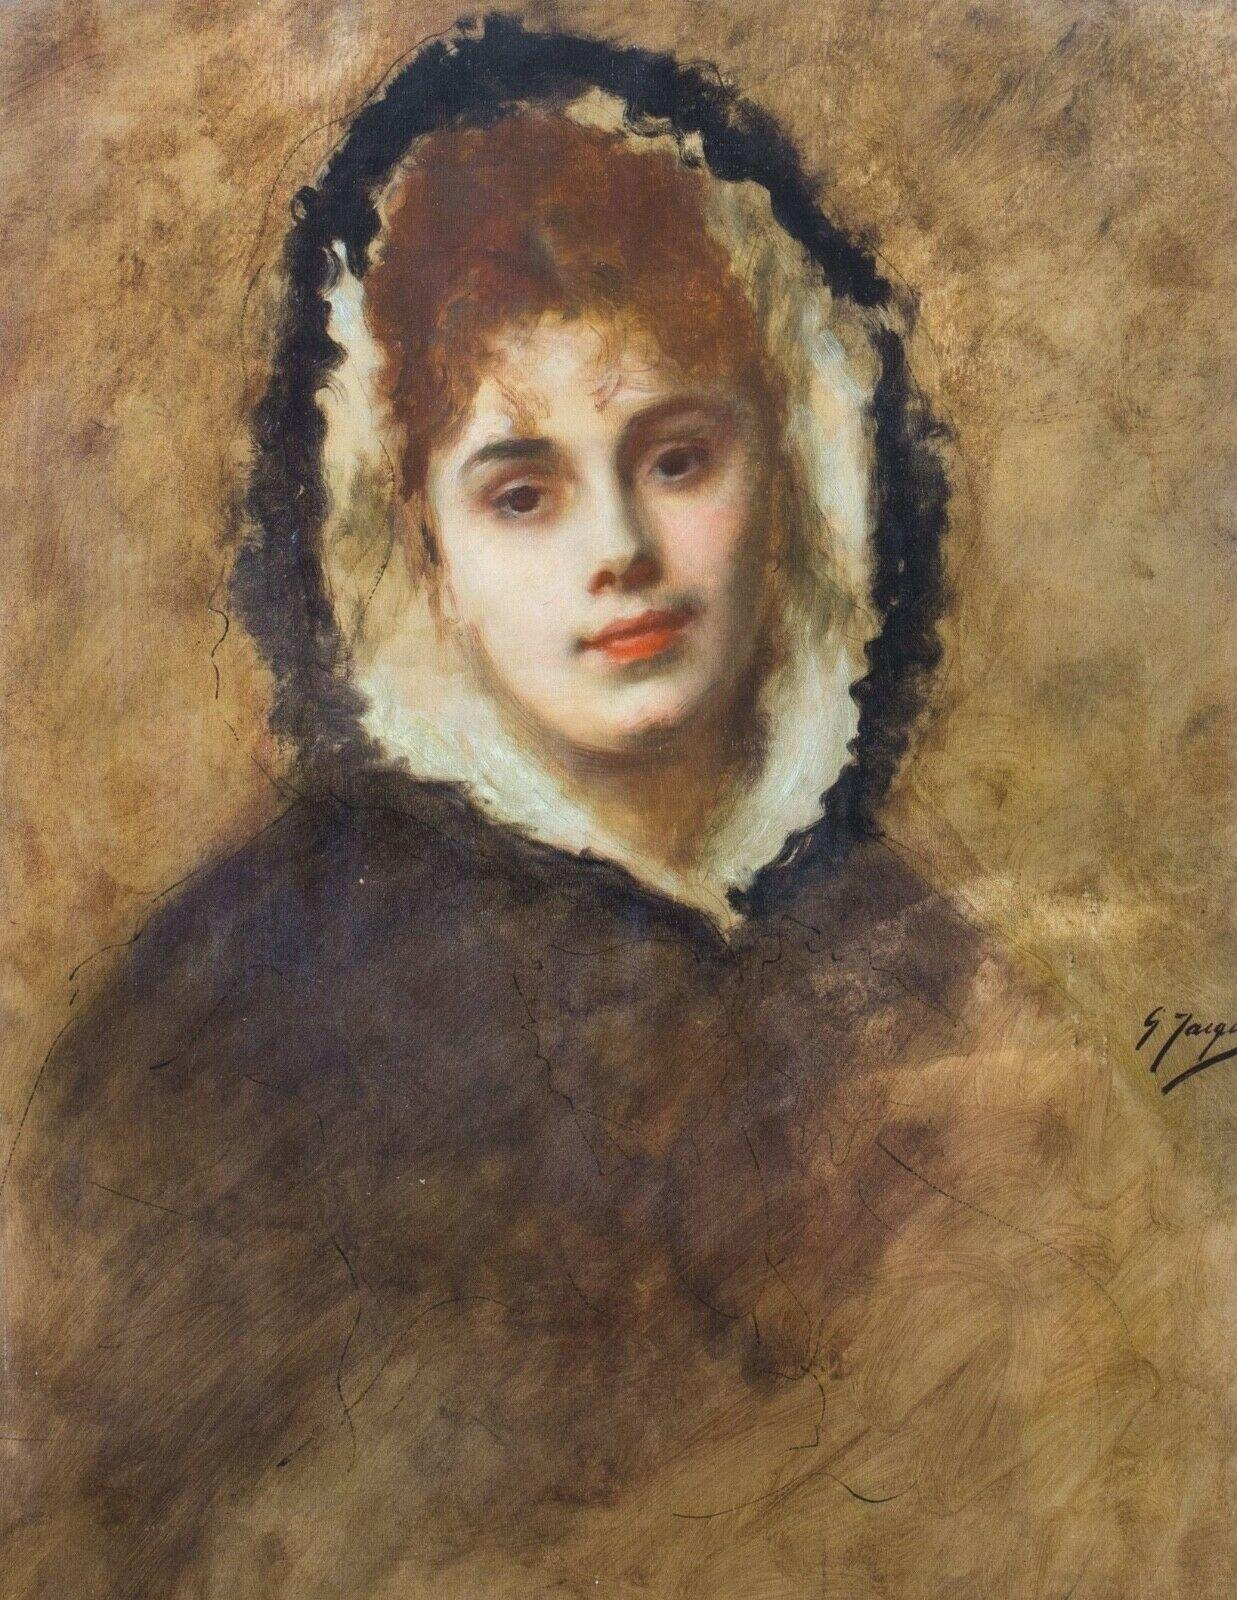 Portrait Of A Lady In A Fur Lined Hood, 19th Century